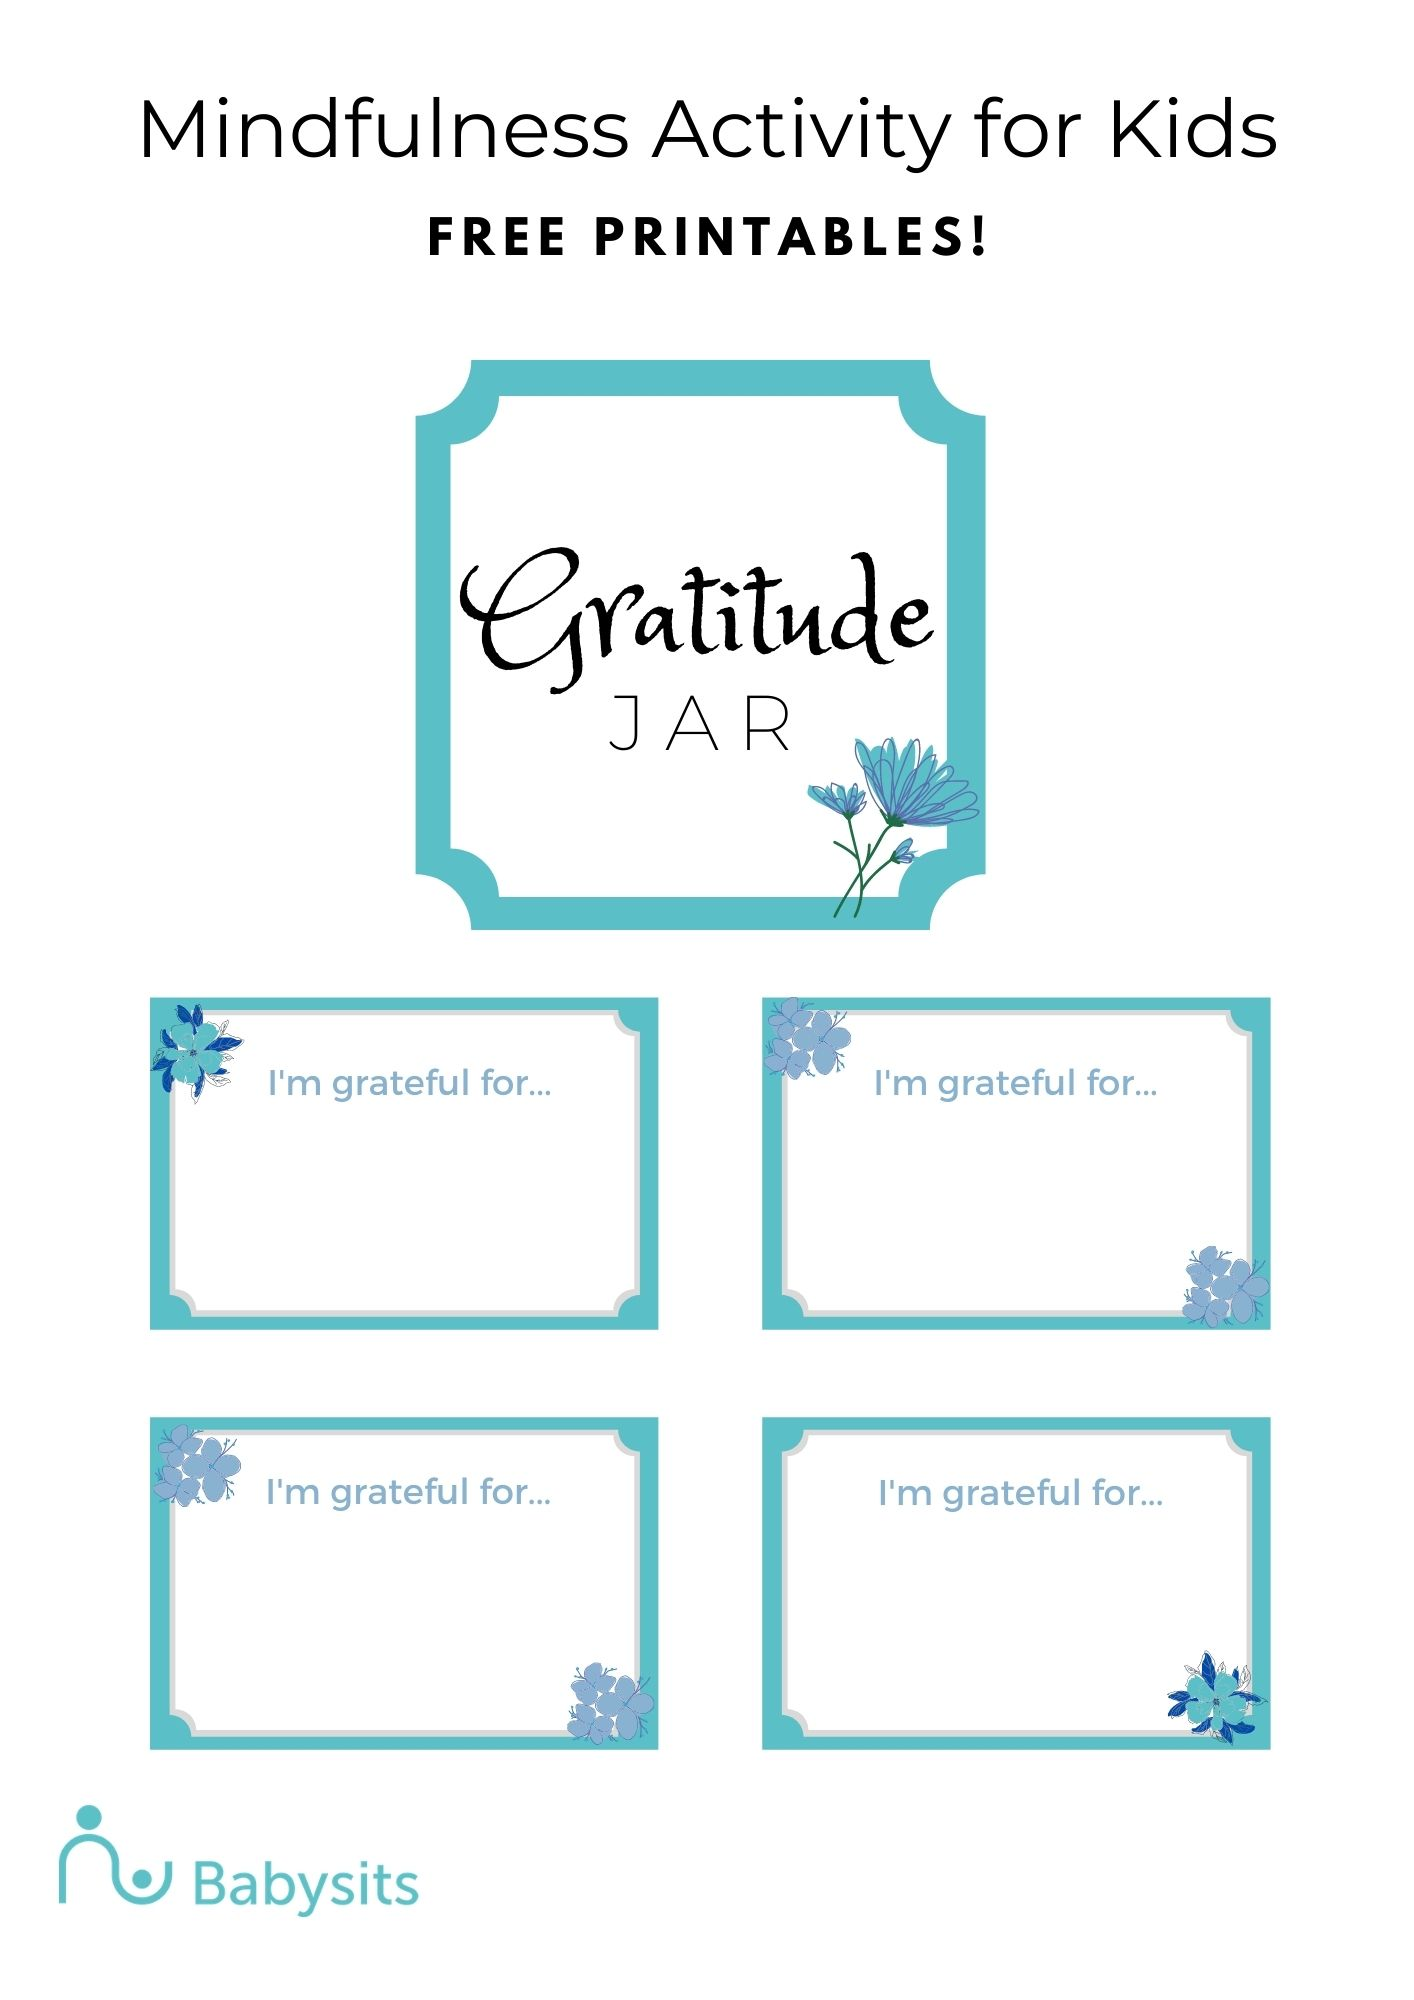 Gratitude Jar Printable Mindfulness Activity